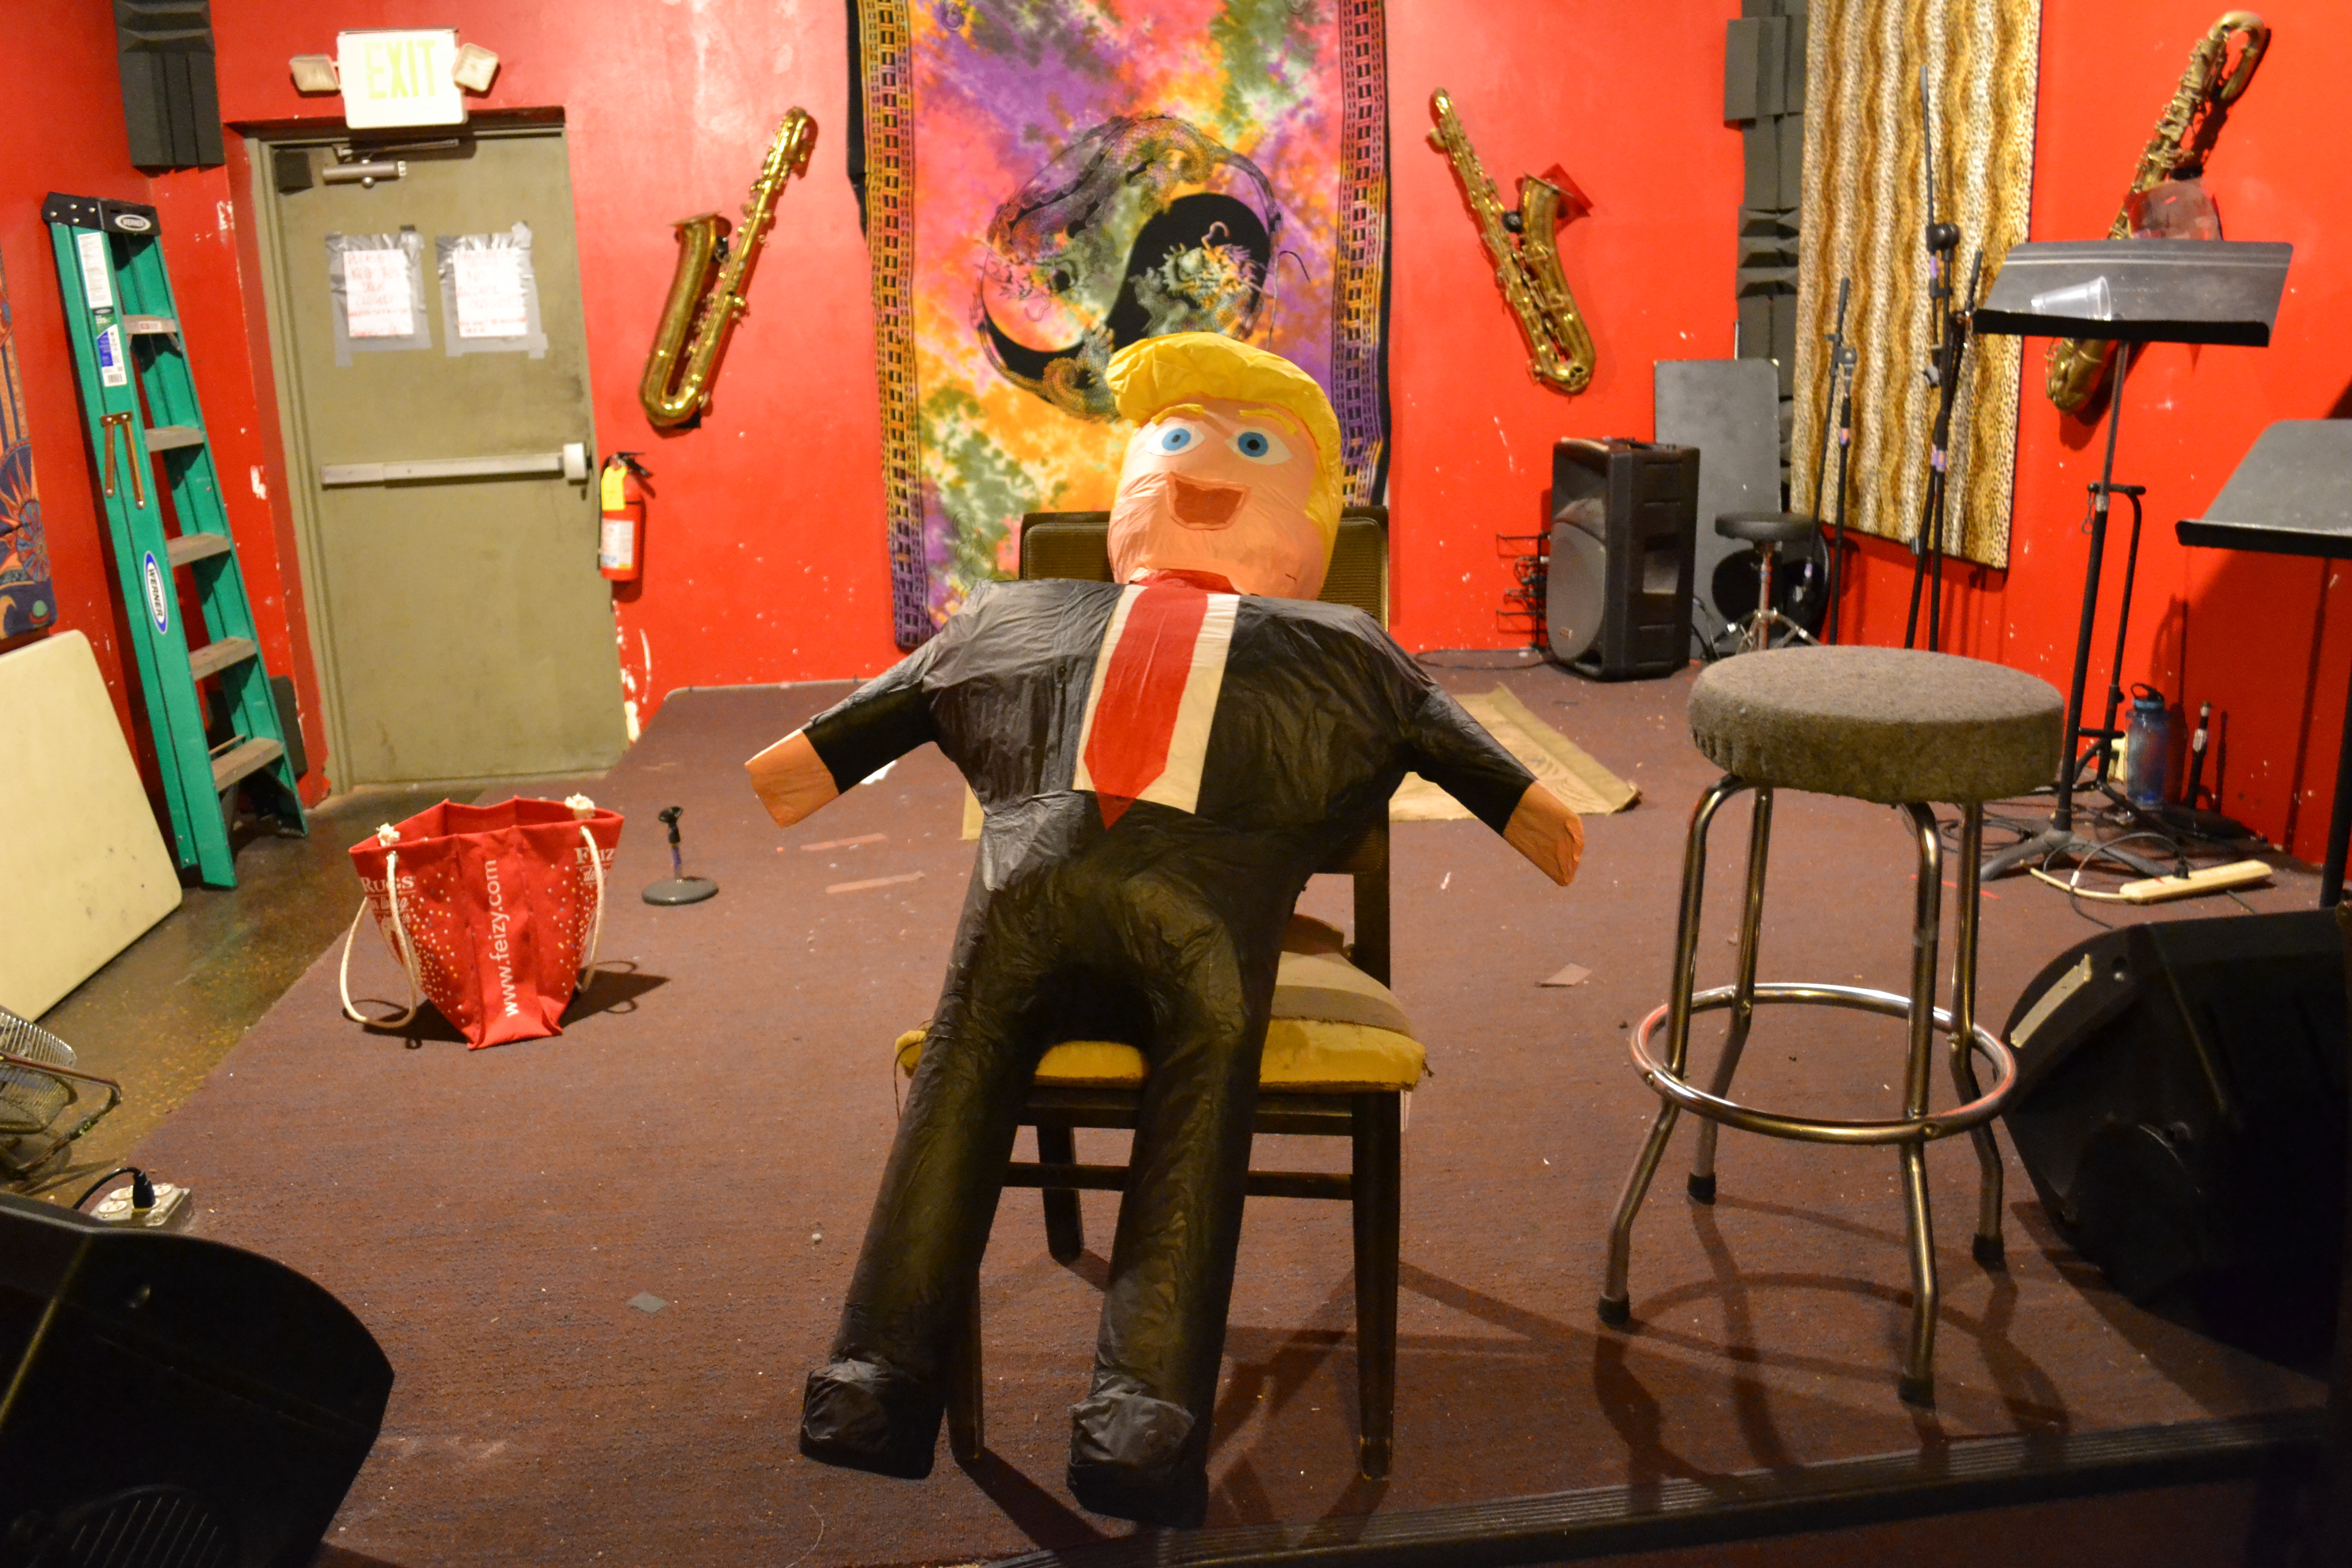 A Donald Trump Pinata awaits as a raffle award at a party for Washington County Democrats, St. George, Utah, Nov. 8, 2016 | Photo by Joseph Witham, St. George News